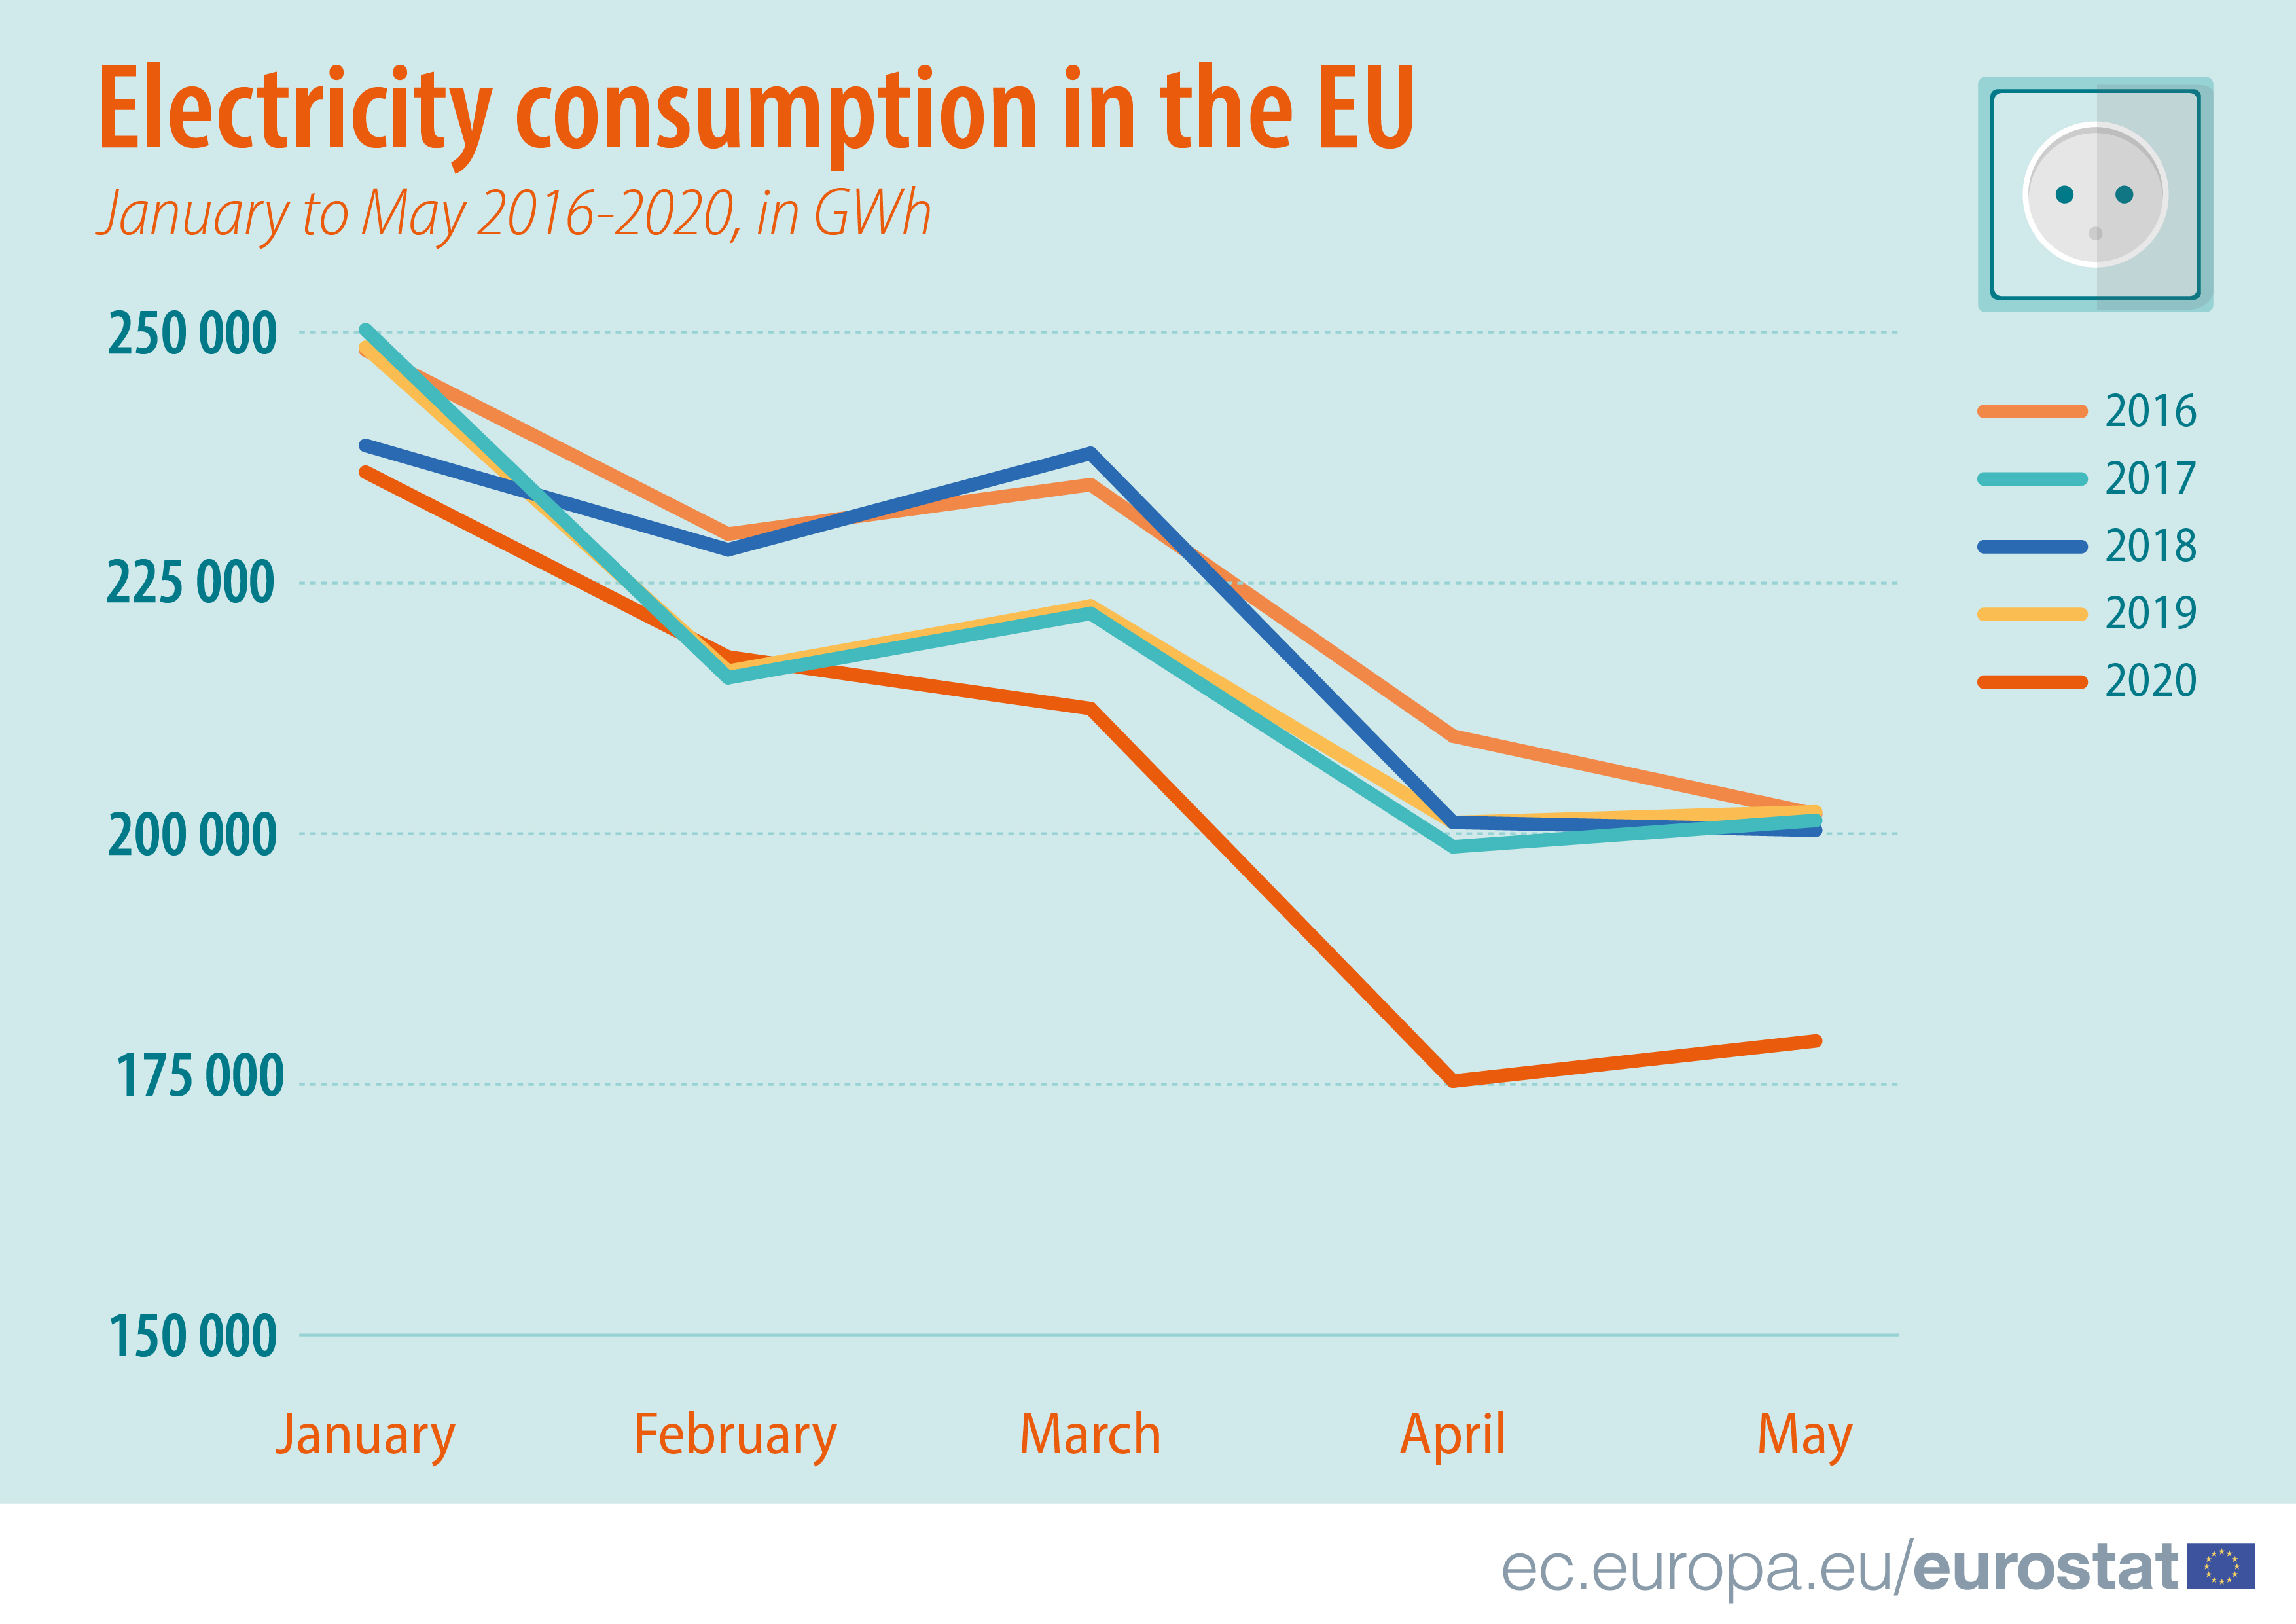 Electricity consumption in the EU, January to May 2016 - 2020, in GWh